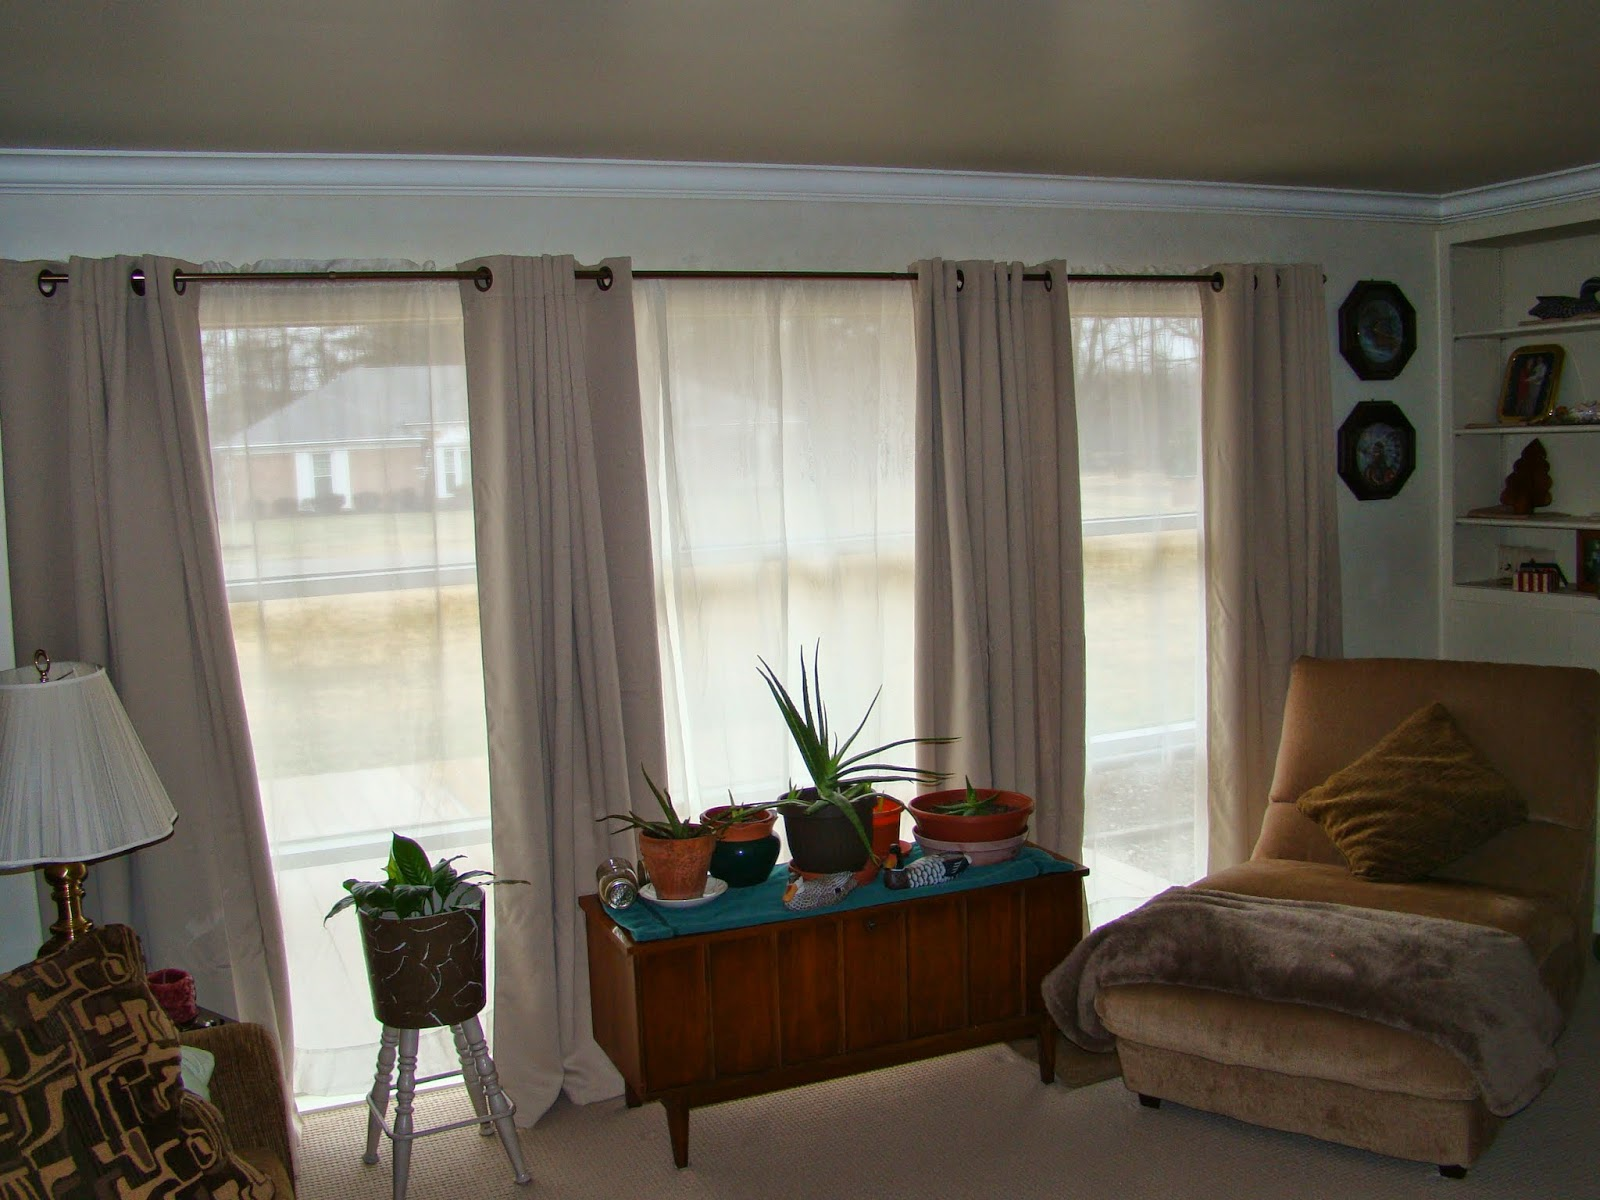 My Journey With Candida Blog : Before And After Window Treatment ~ I ...